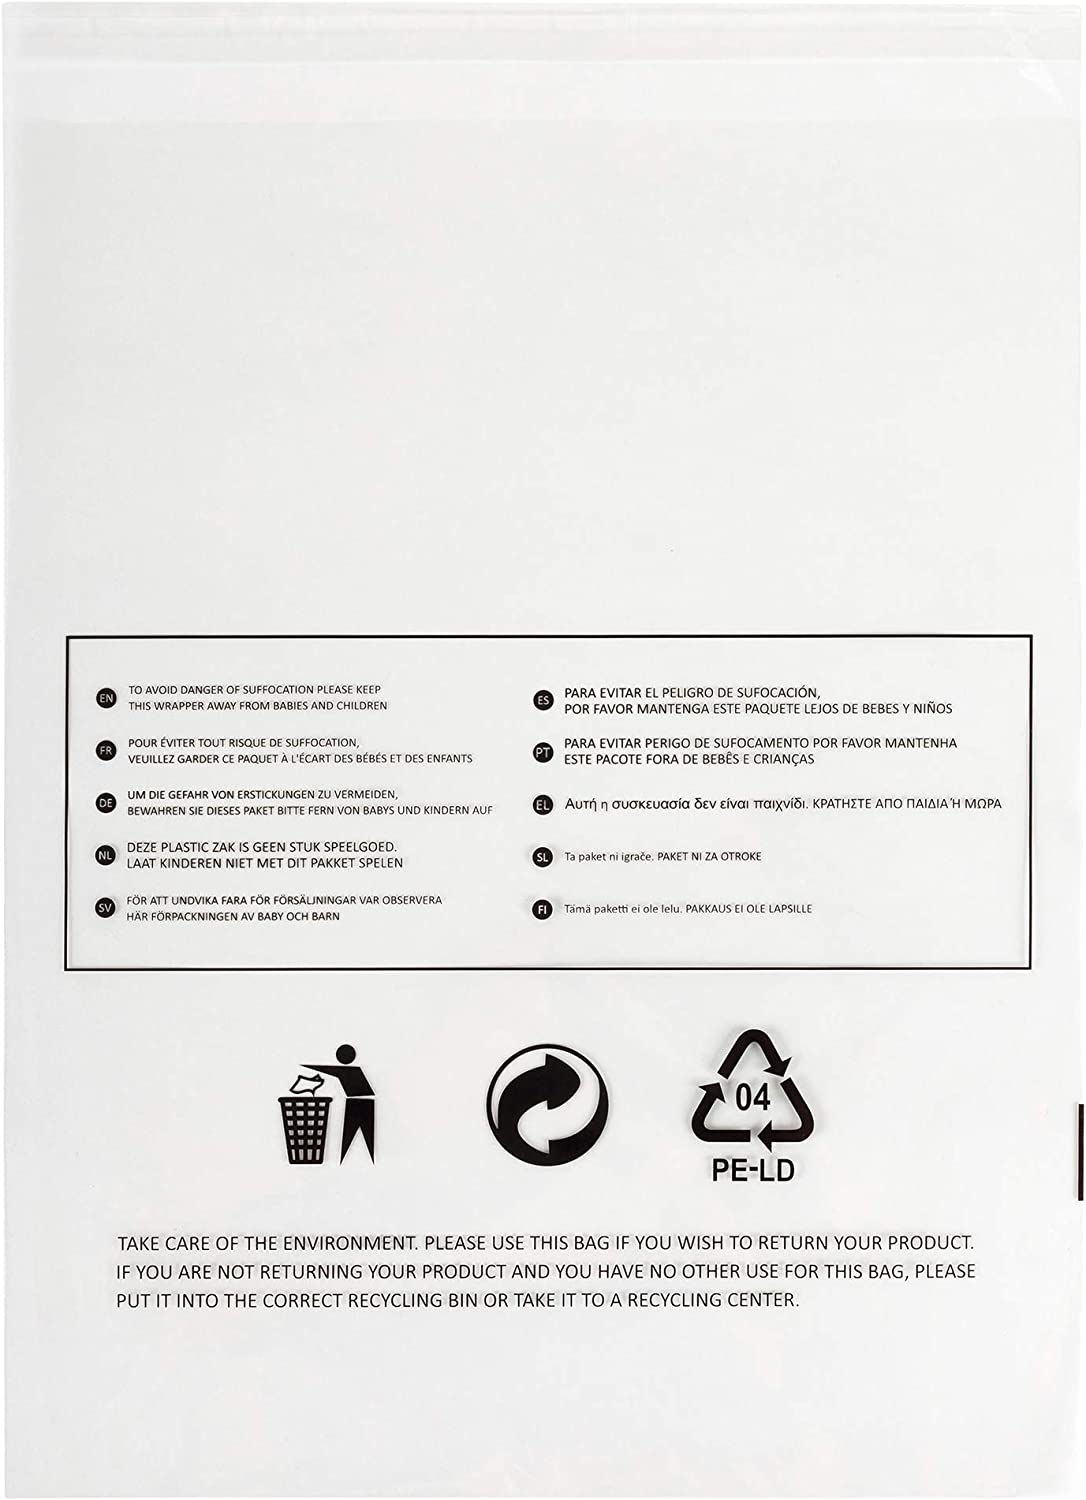 250 x Clear Poly Bags with Suffocation Warning for Fulfillment 250 Polybags - 11x15